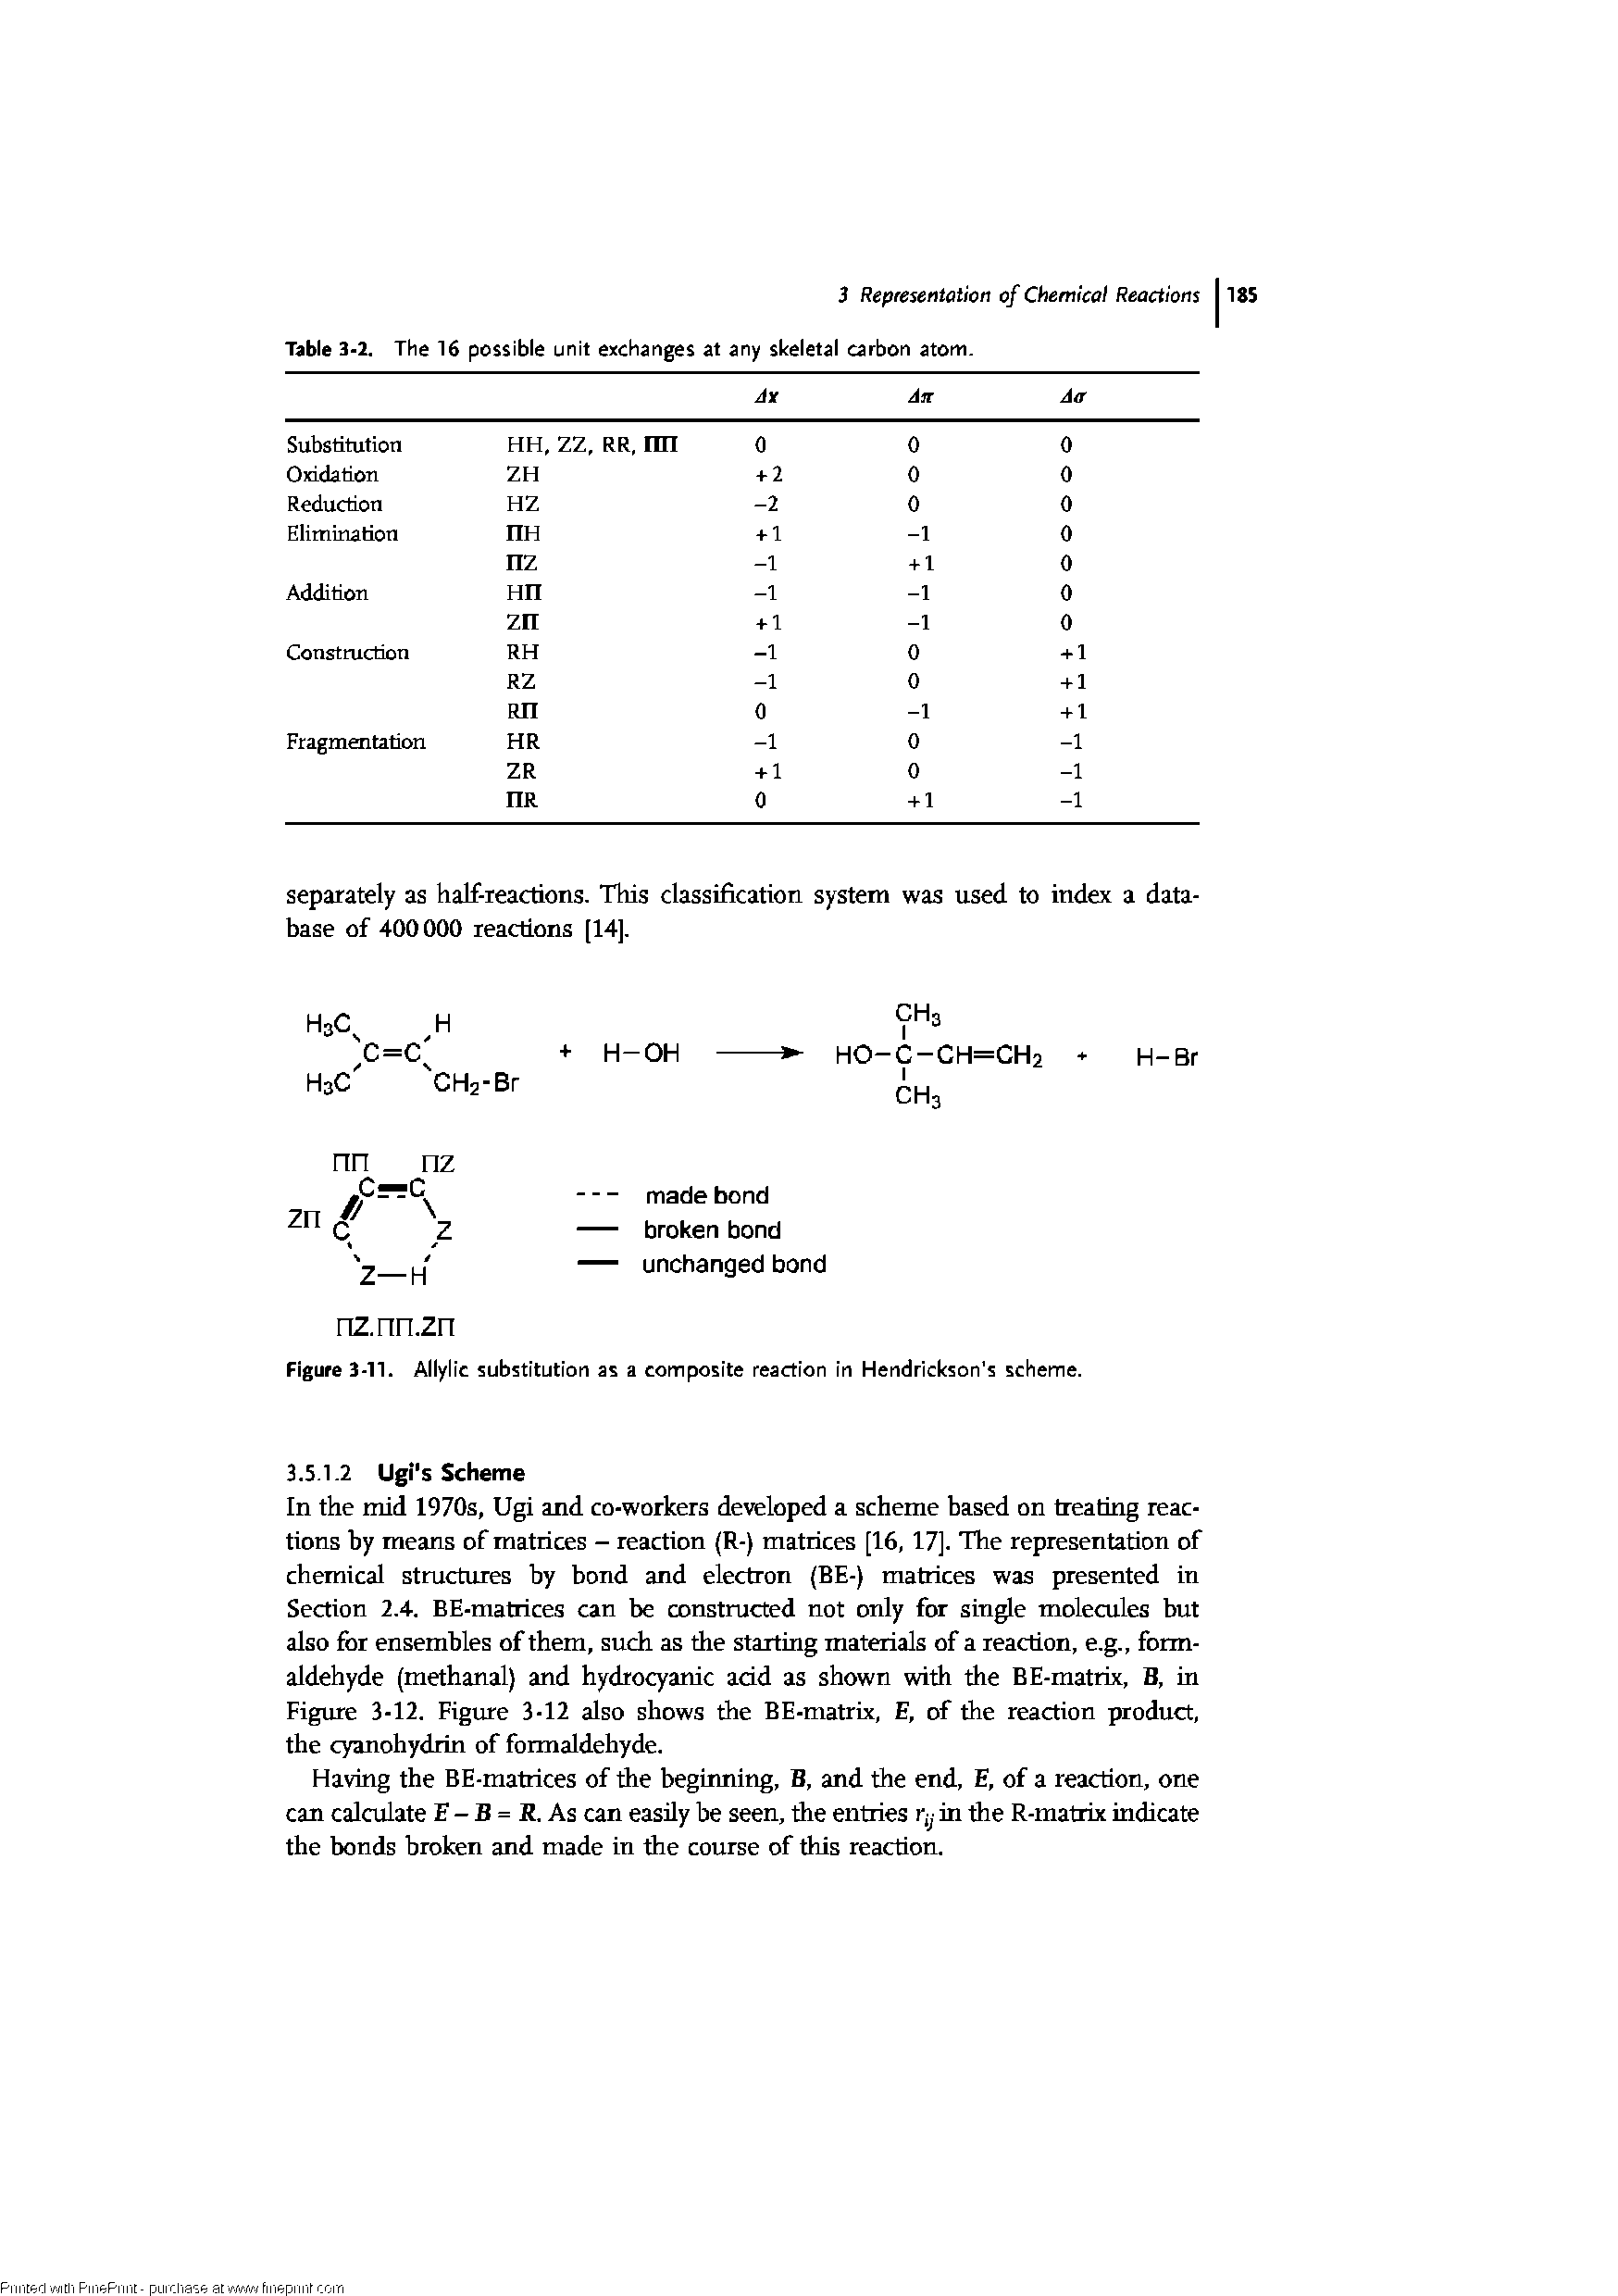 "Figure 3-11. Allylic substitution as a <a href=""/info/composite_reaction"">composite reaction</a> in Hendrickson s scheme."